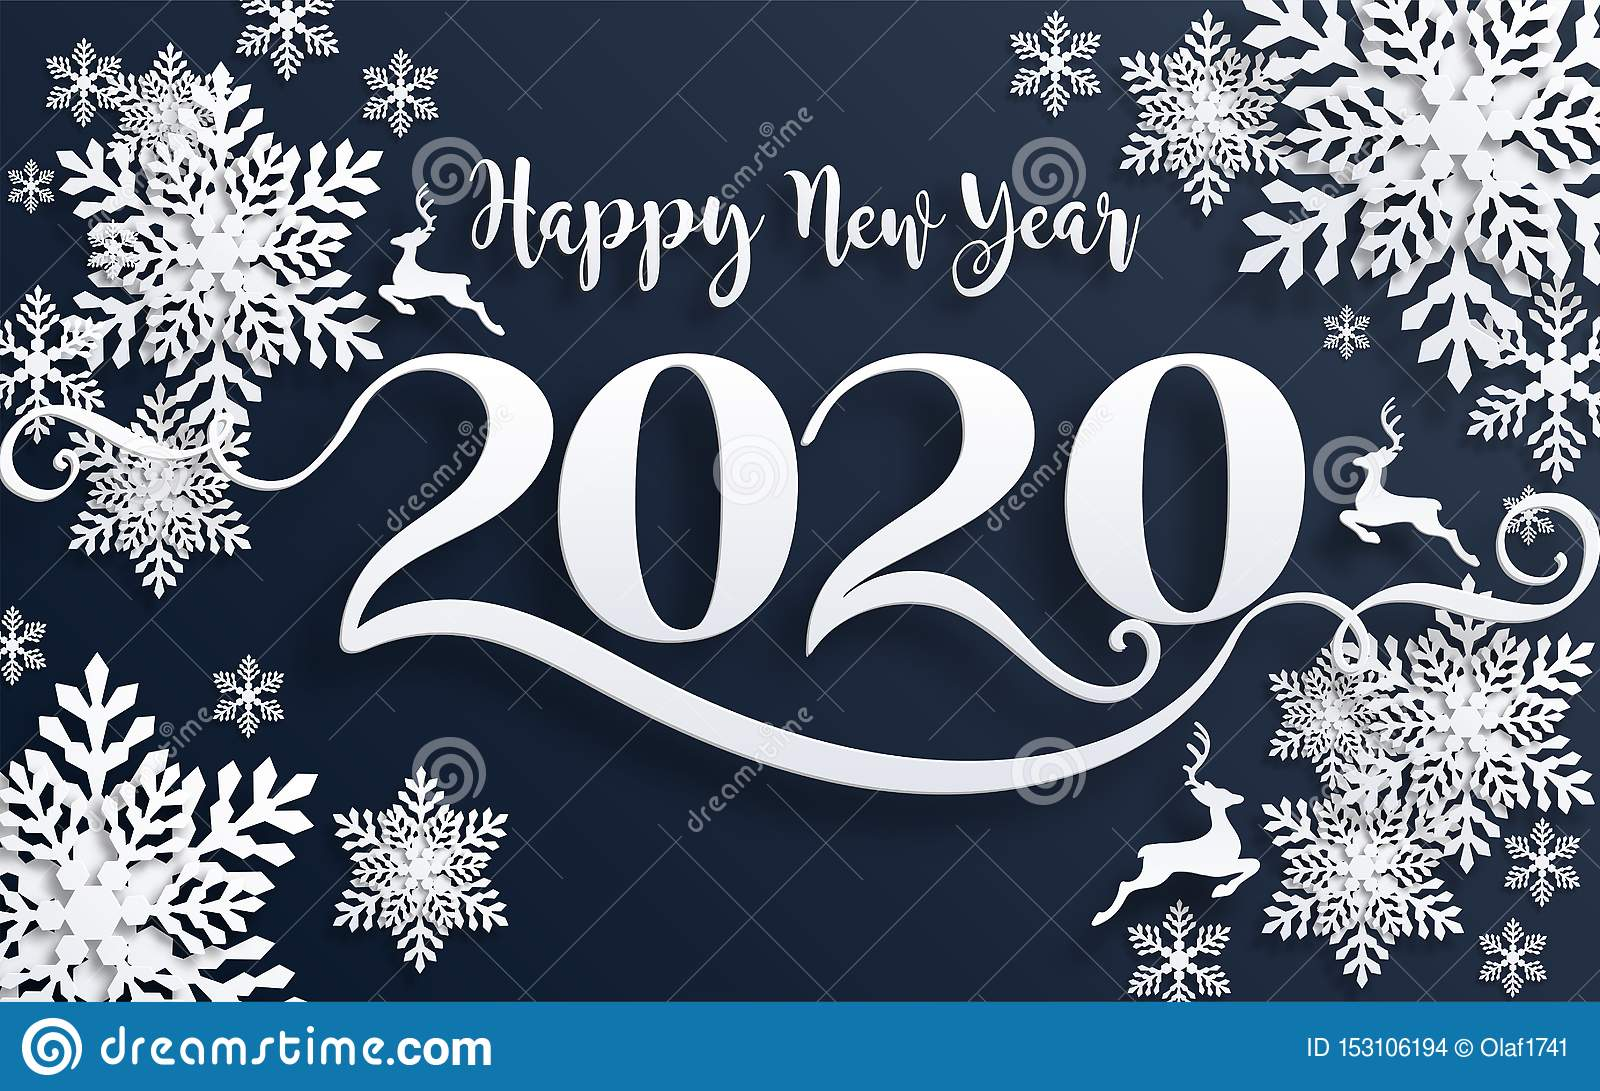 Merry Christmas Greetings And Happy New Year 2020 Stock